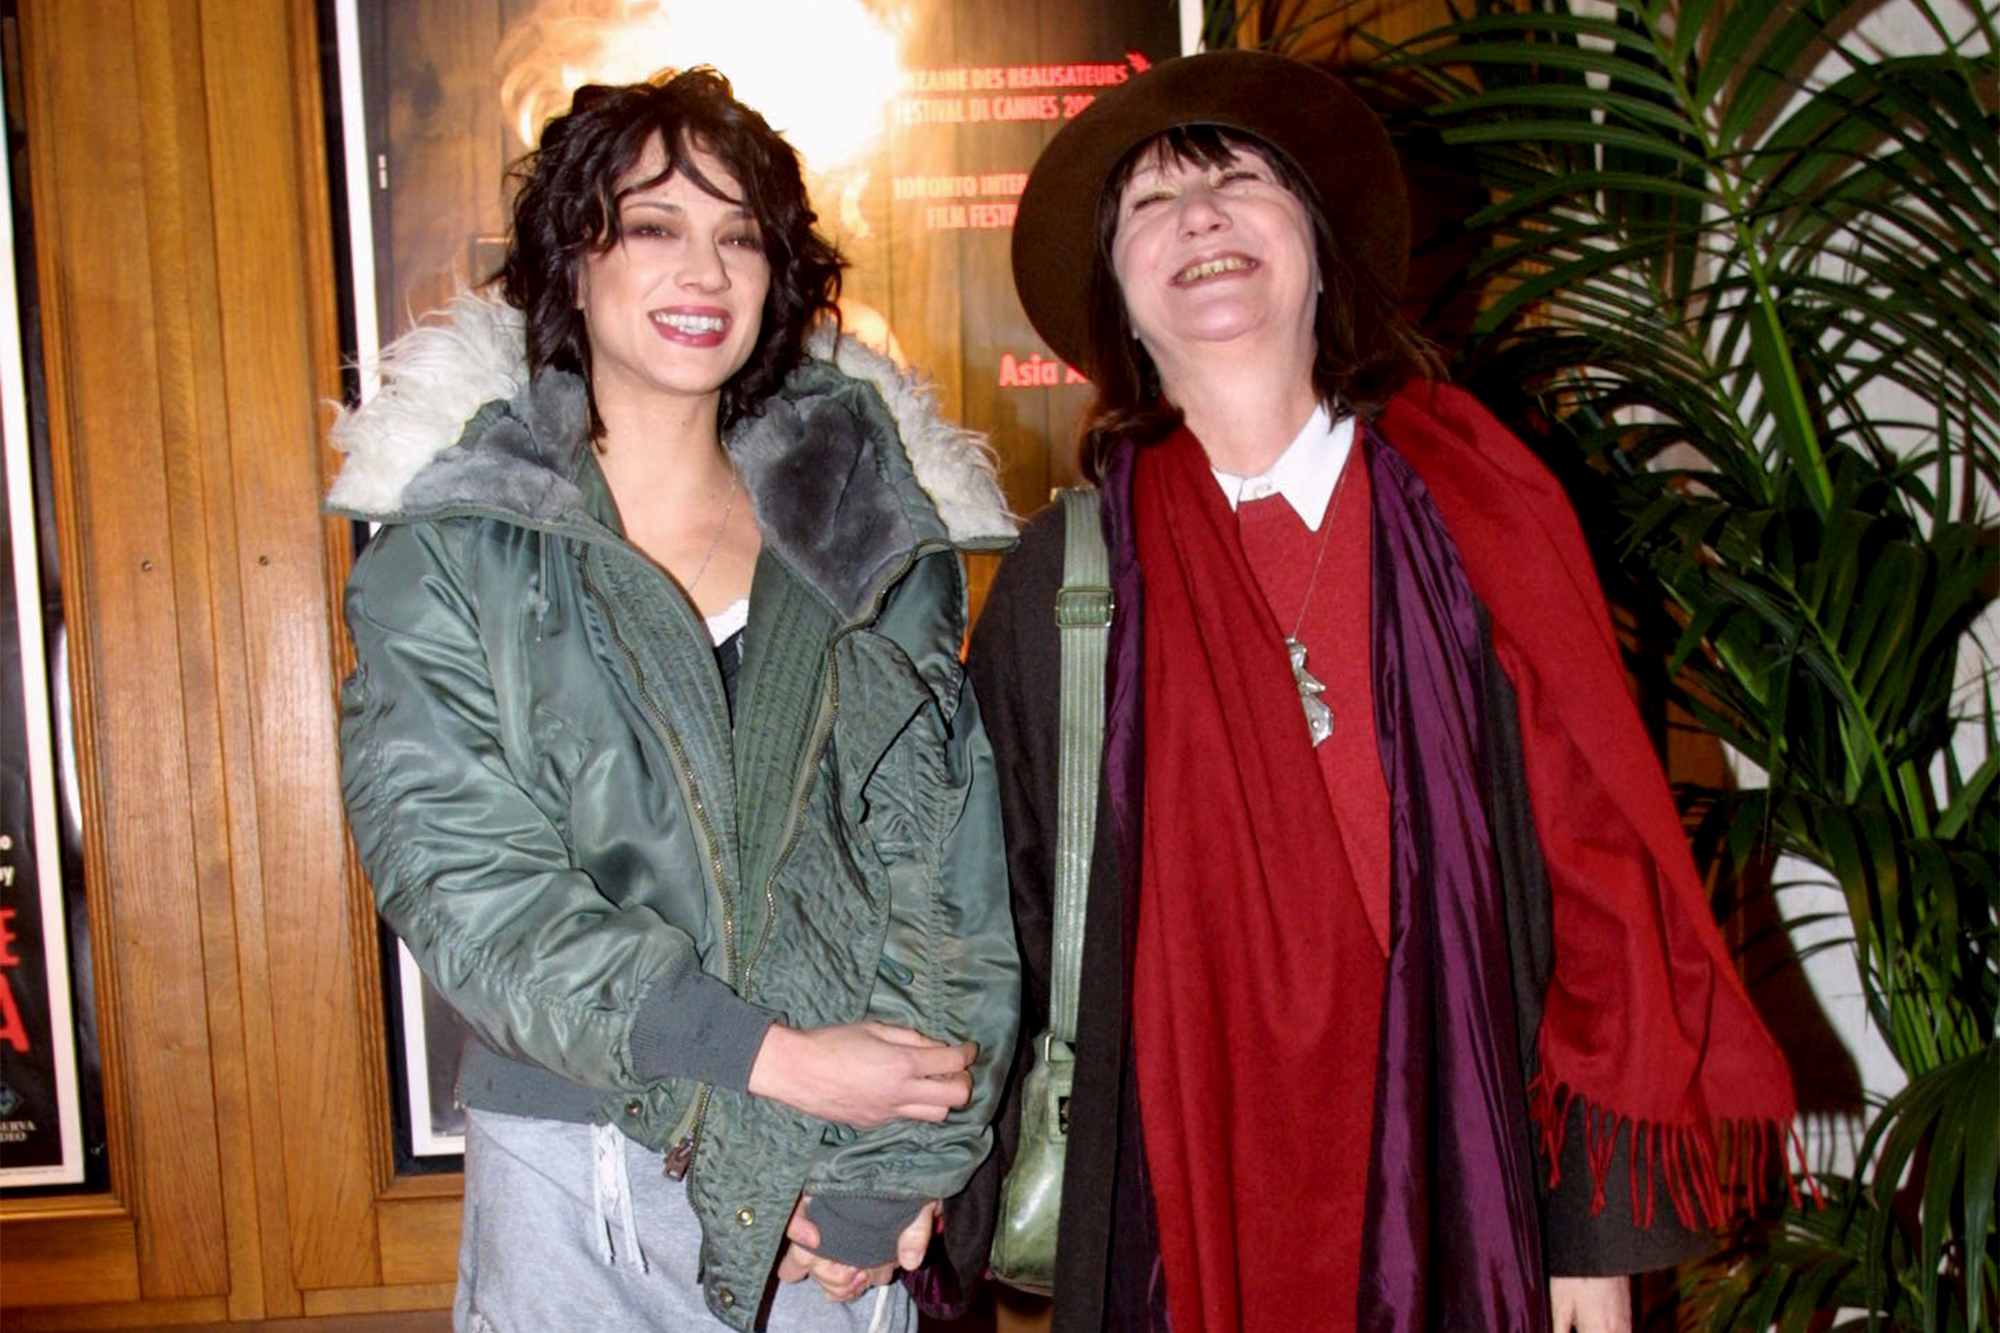 Asia Argento with her mother Daria Nicolodi